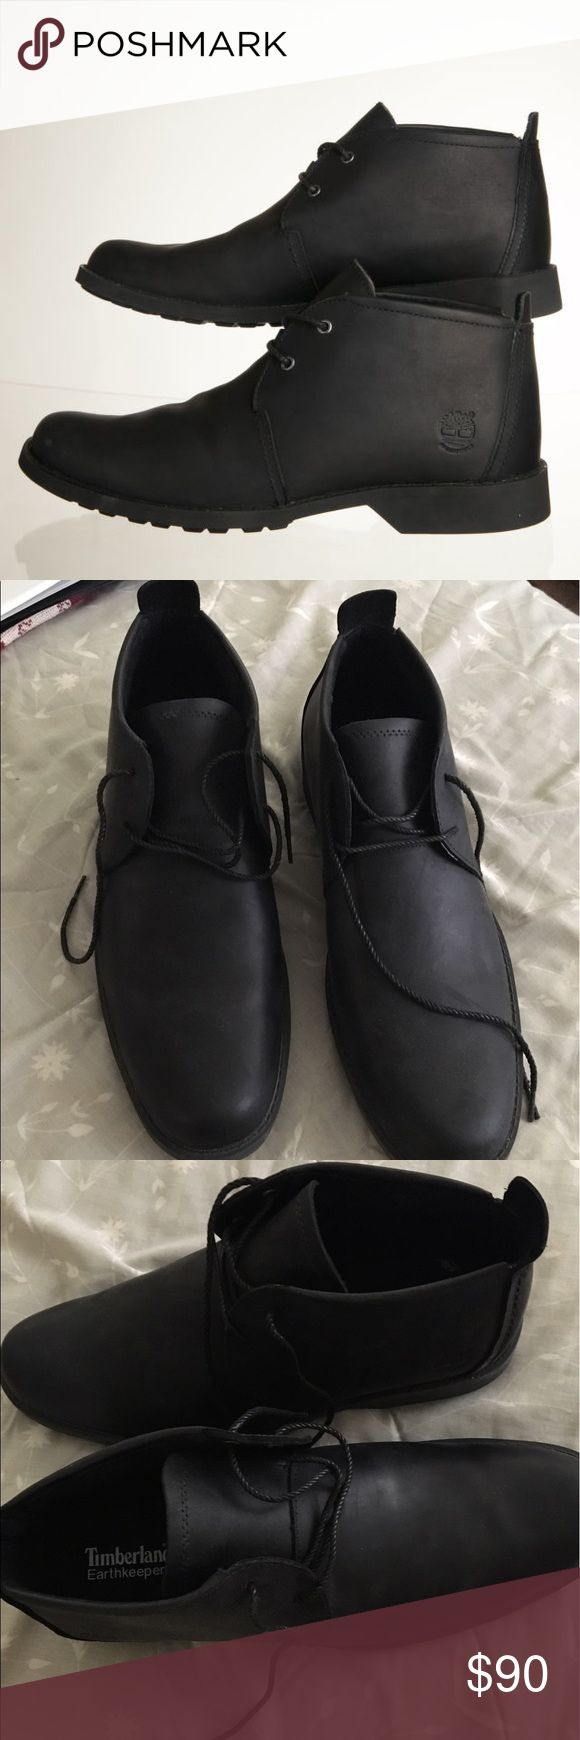 Men's timberland black boots BRAND NEW leather rubber sole very comfortable Timberland Shoes Boots